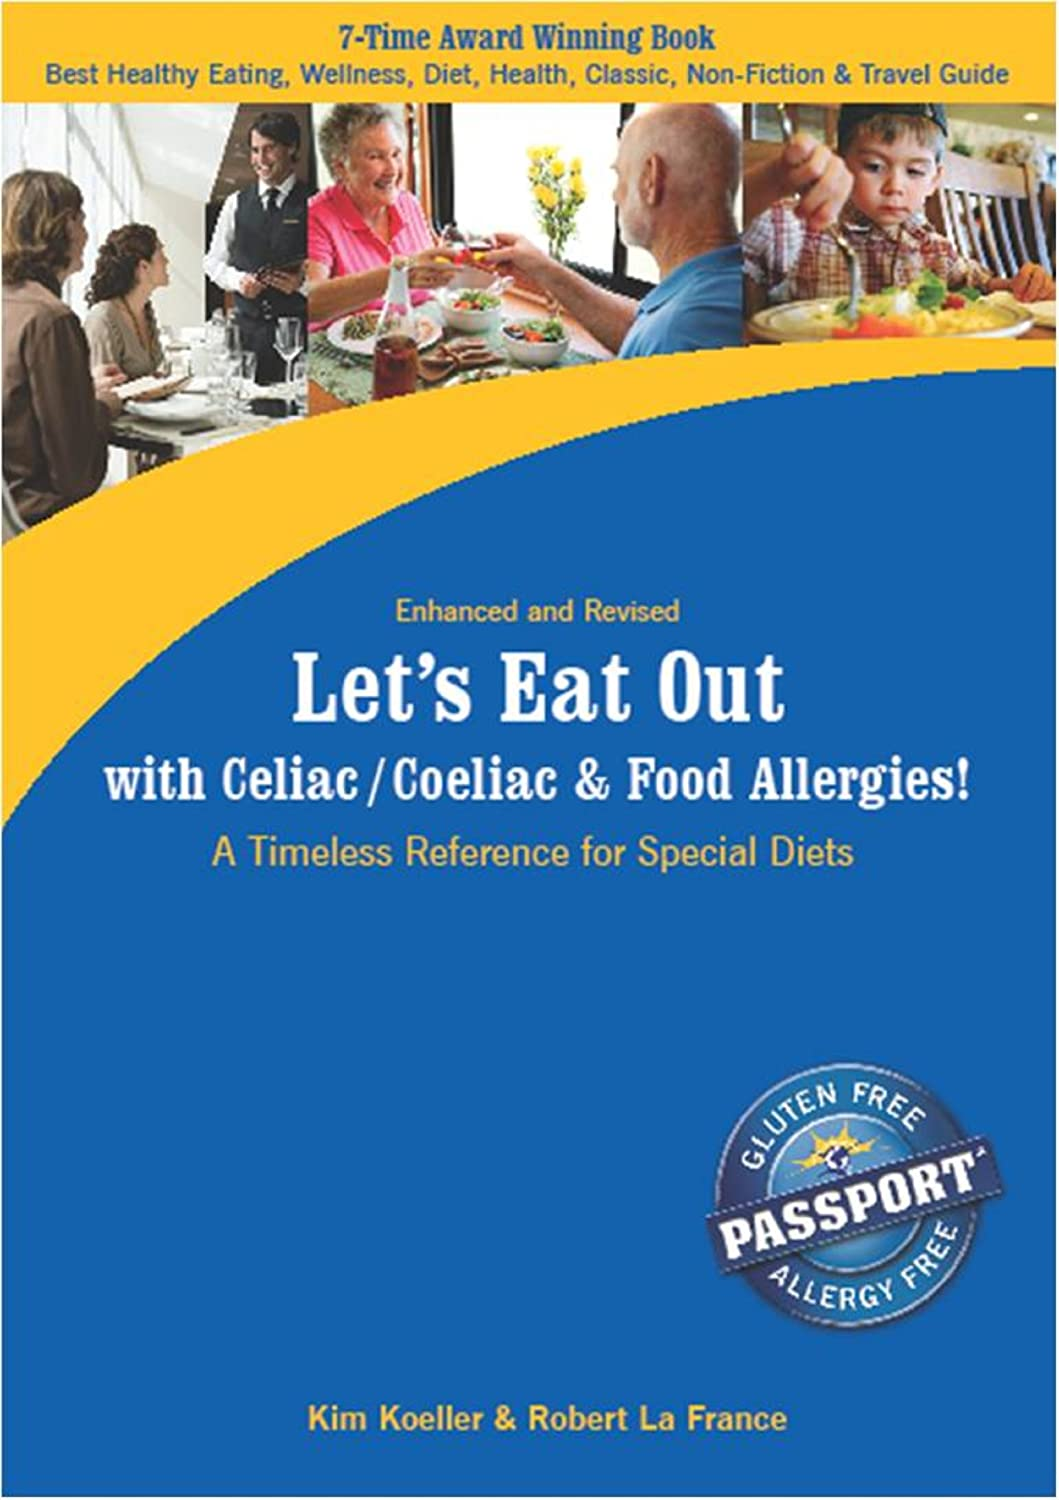 Let's Eat OUt! Passport